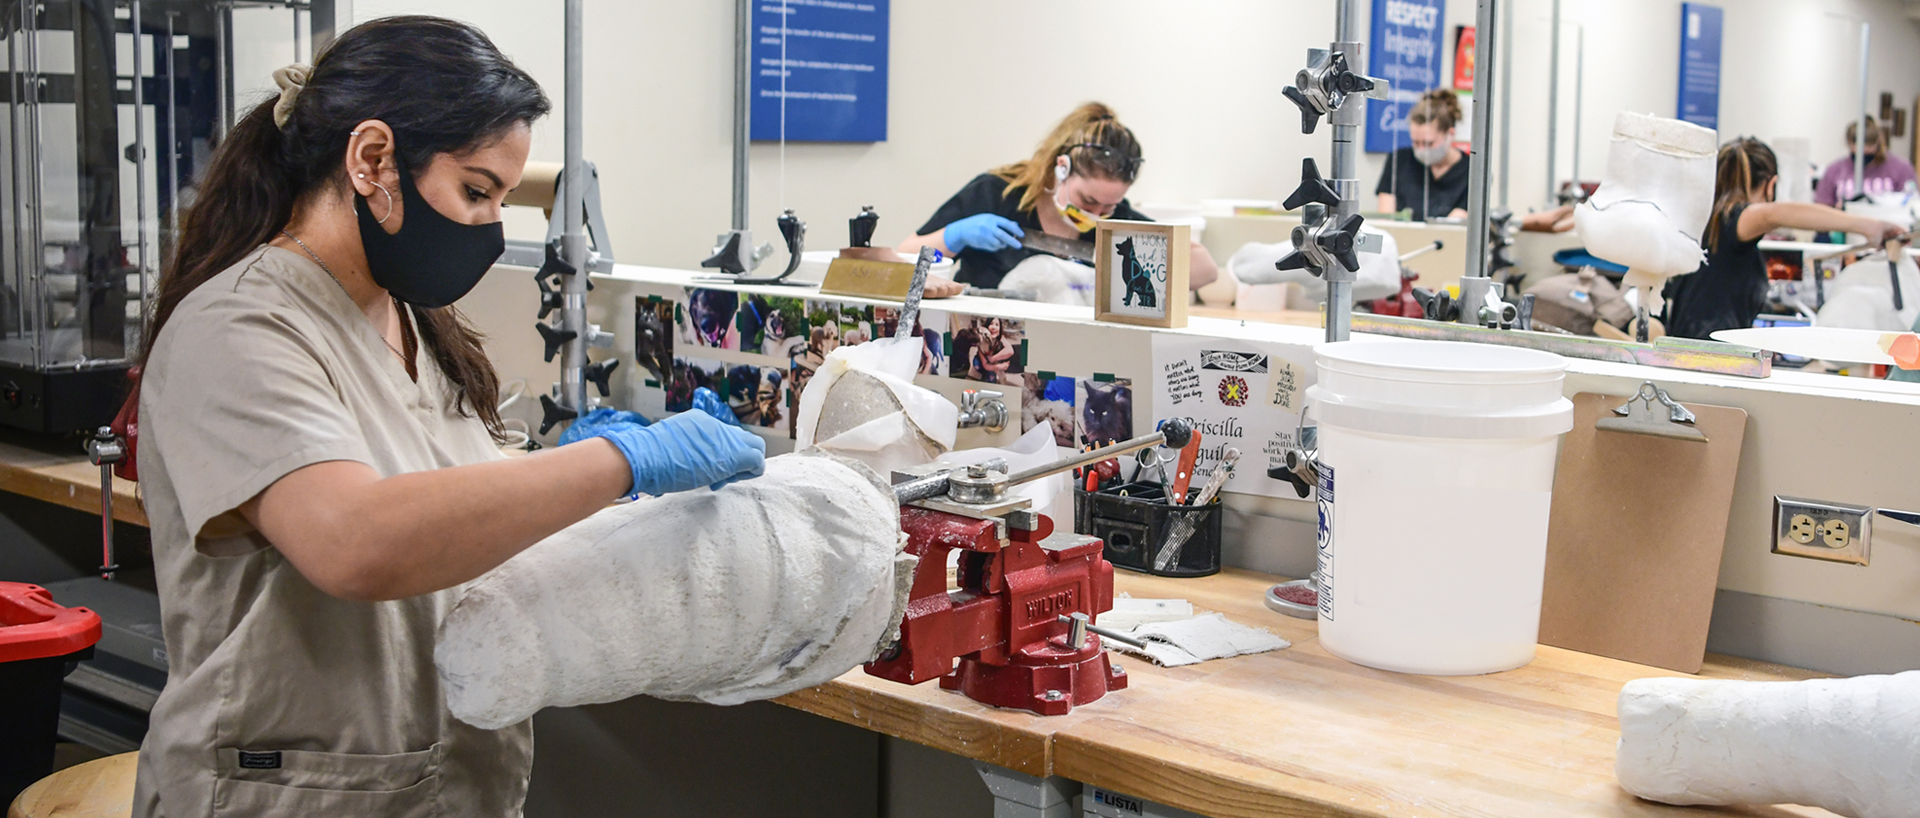 An Orthotics and Prosthetics workspace